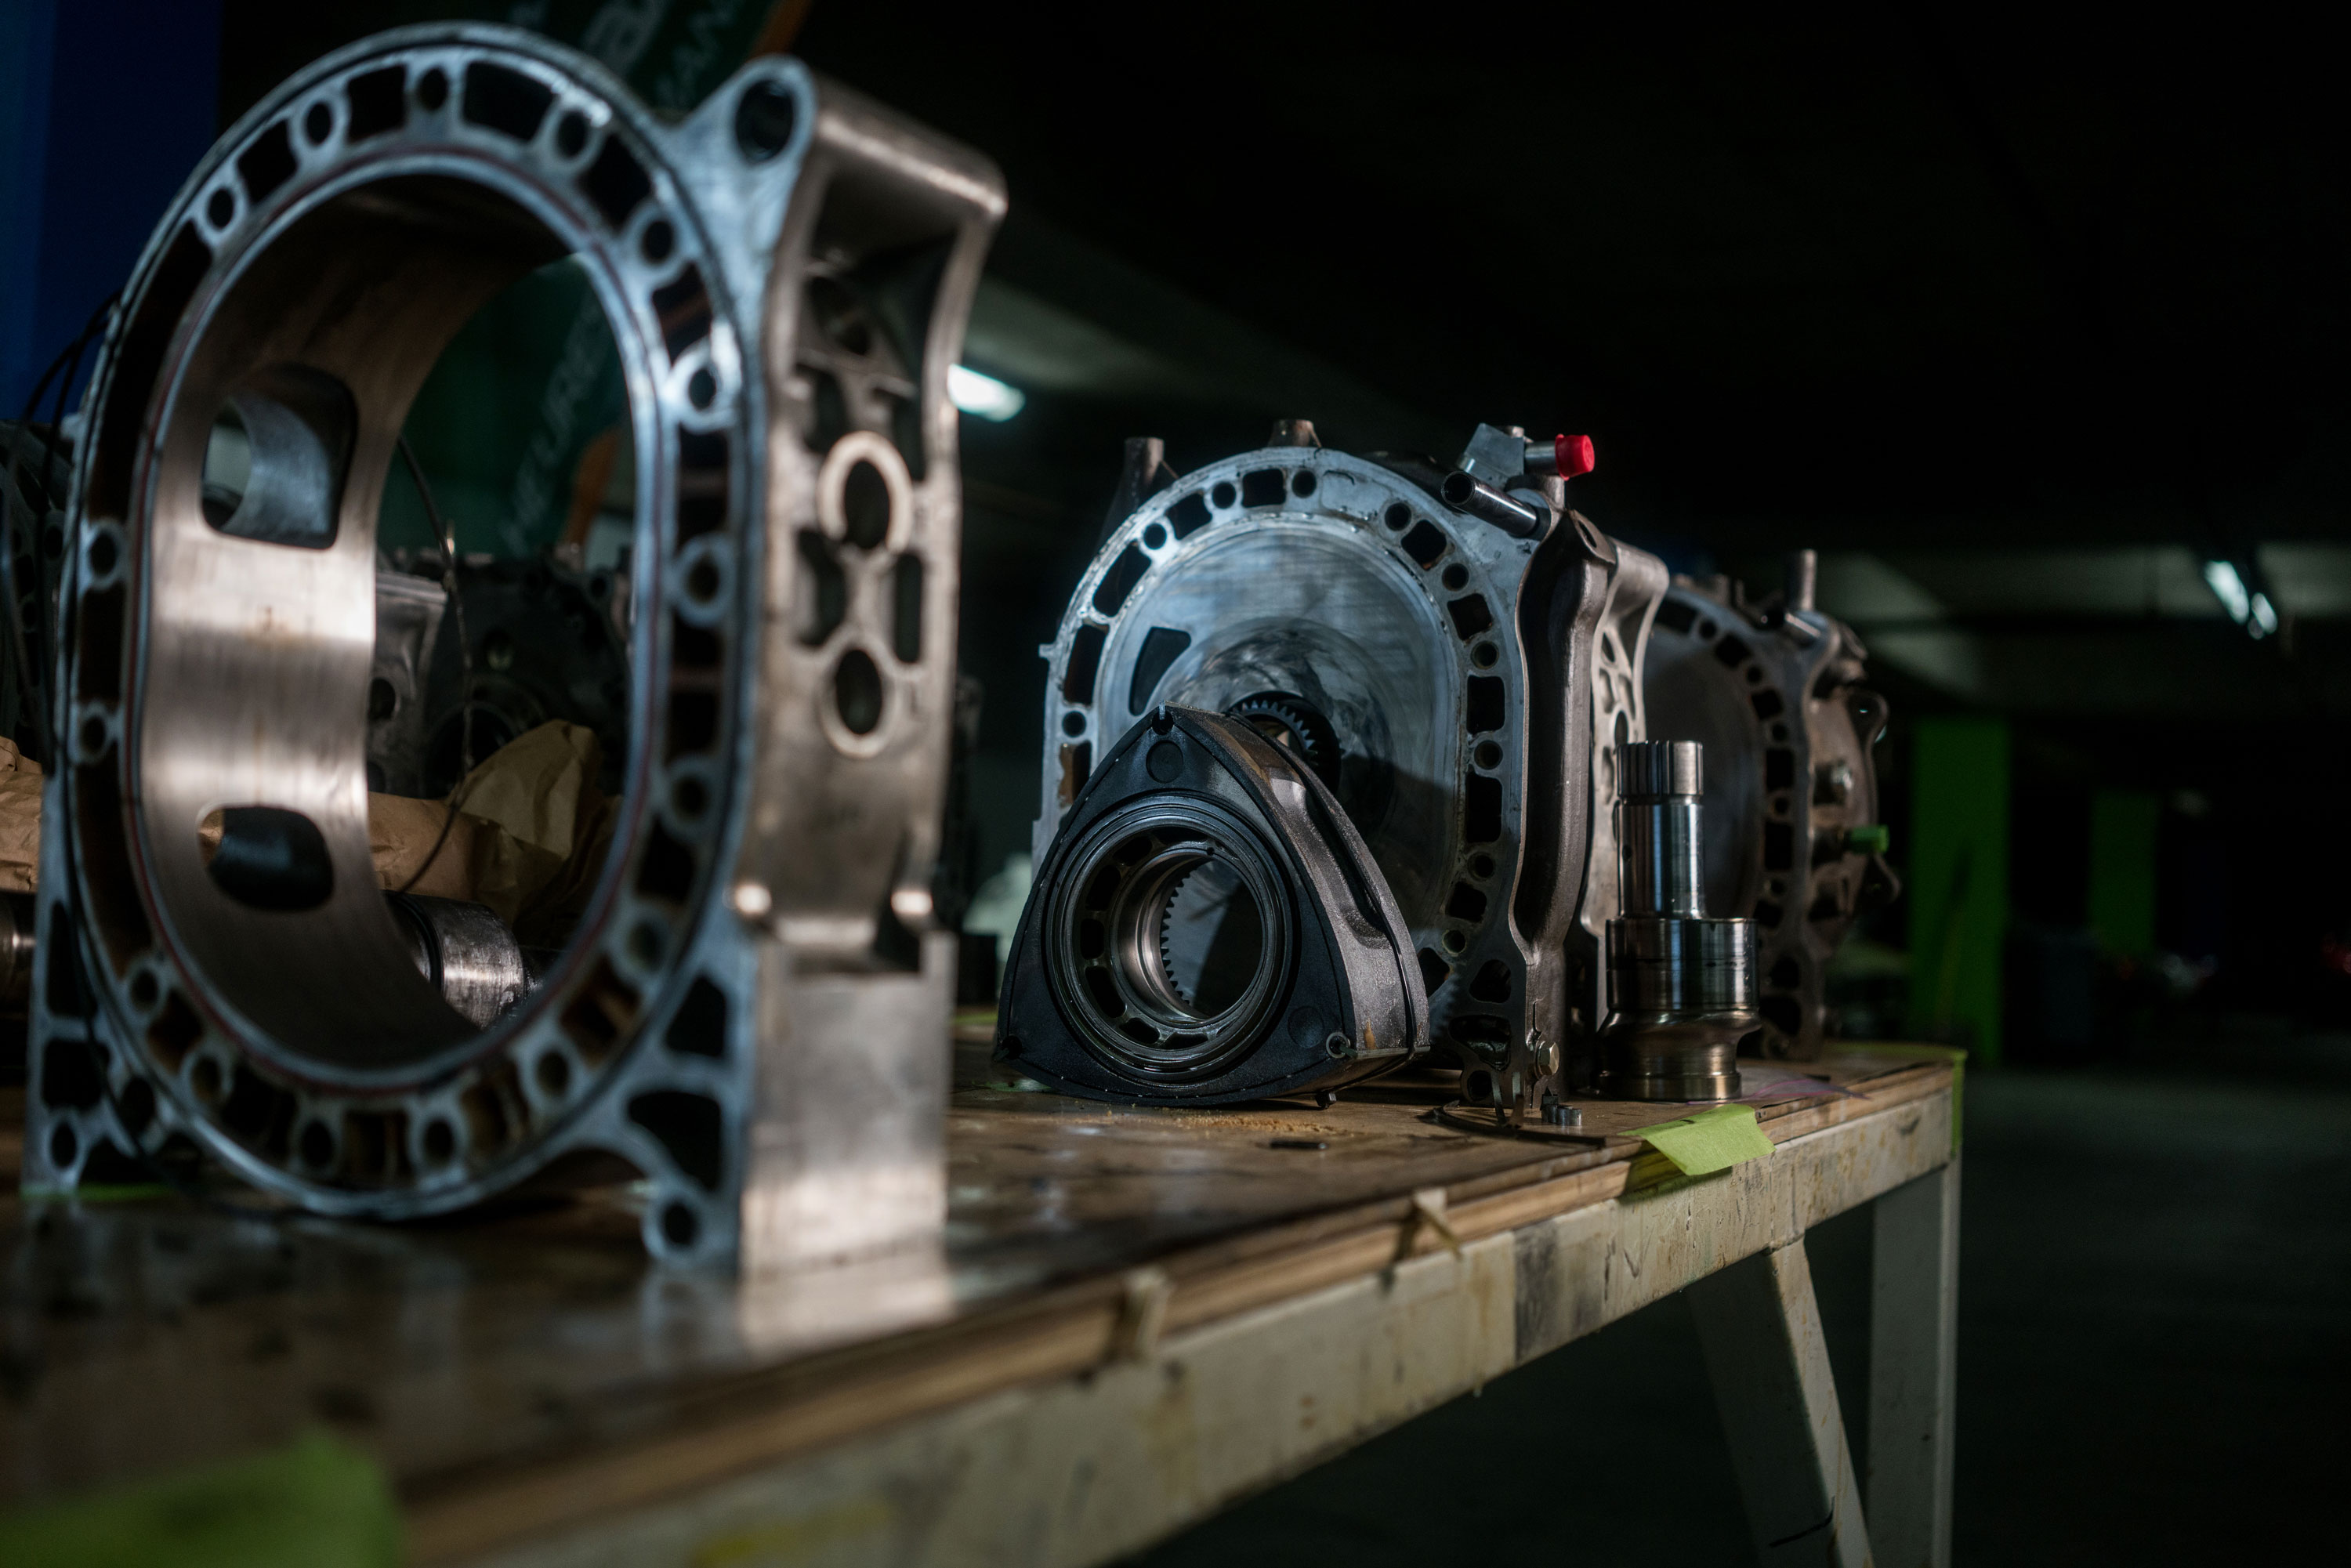 Mazda rotary engine deconstructed